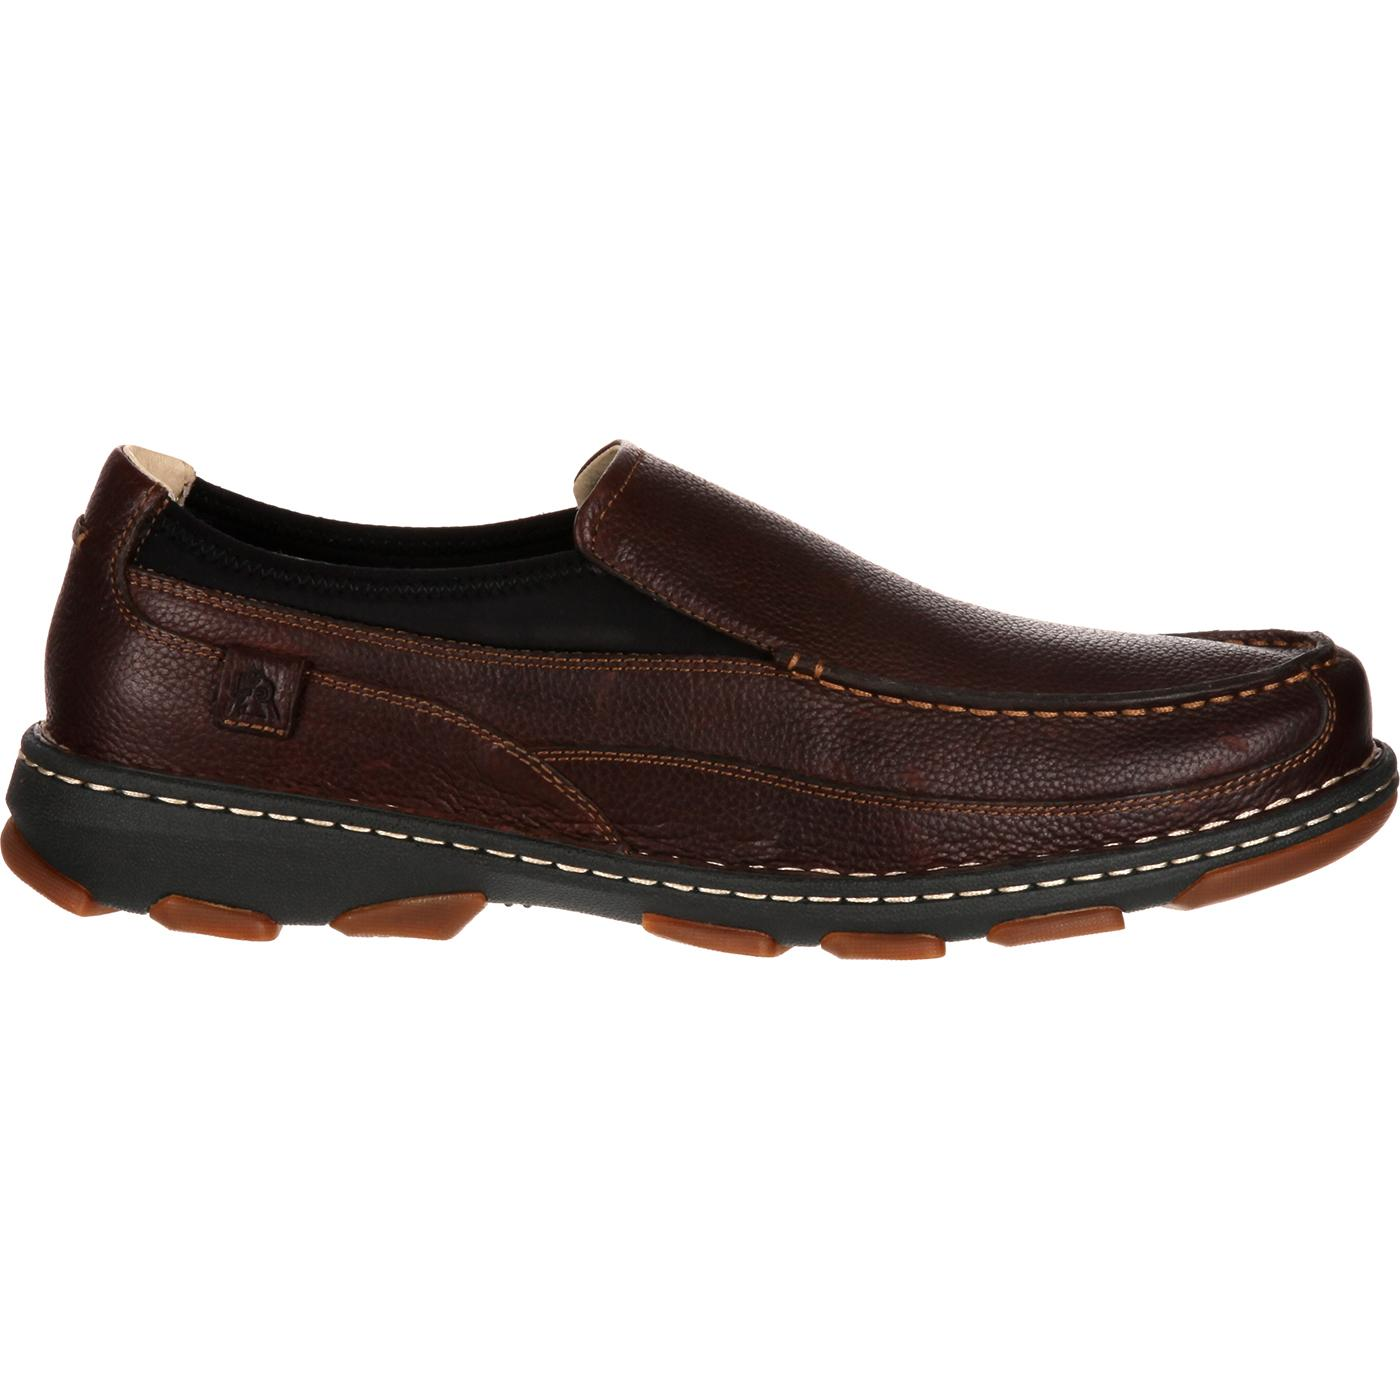 Lehigh Outfitters Shoe Reviews